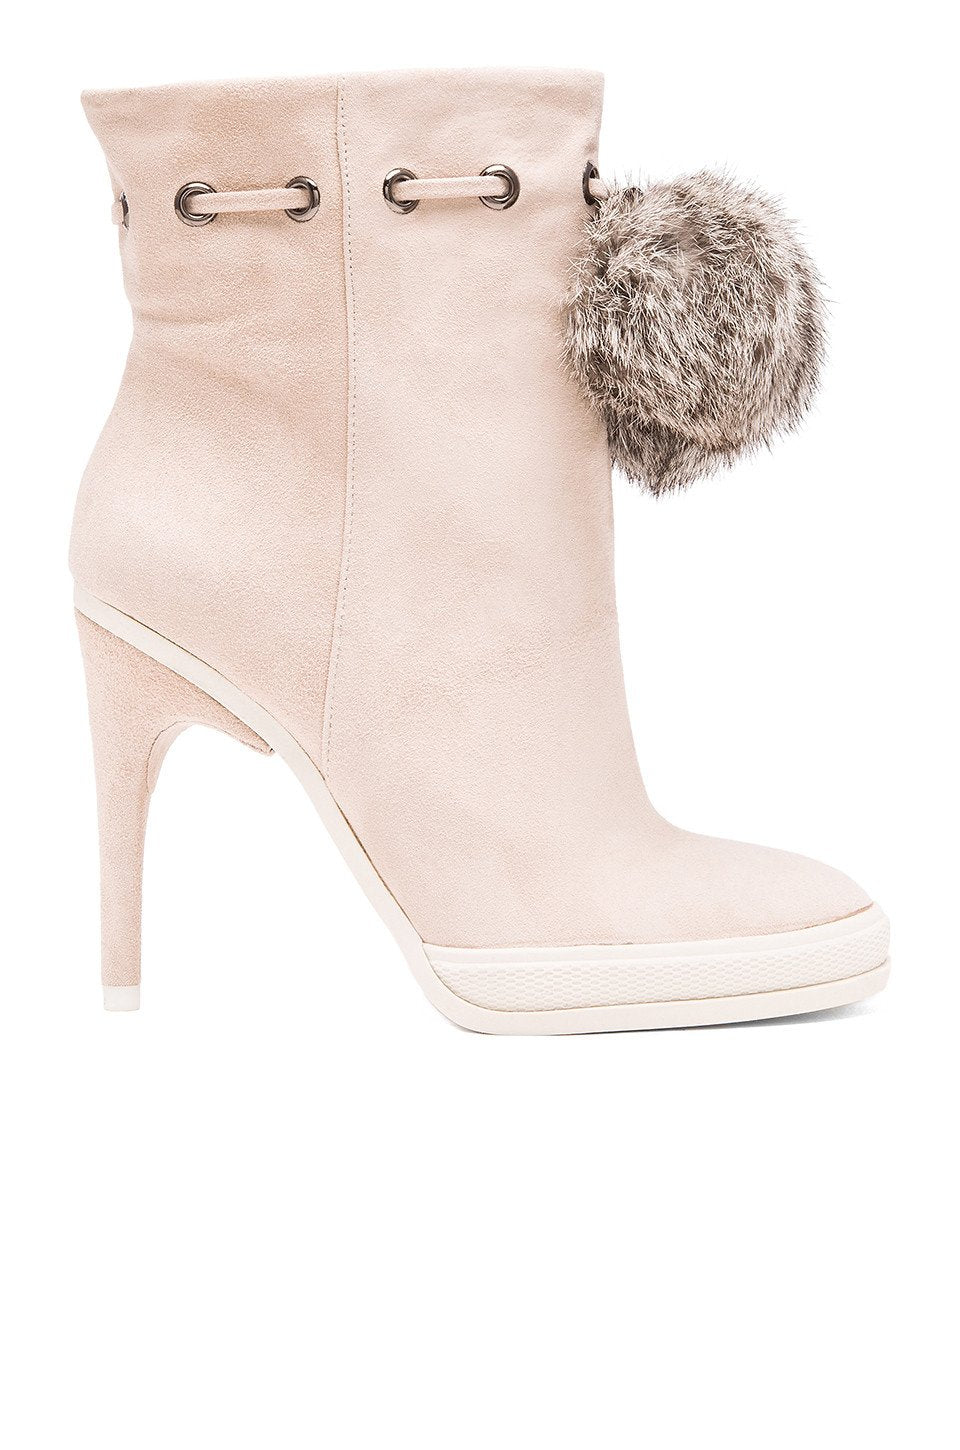 Perry Bootie With Rabbit Fur - Kustom Label - 1